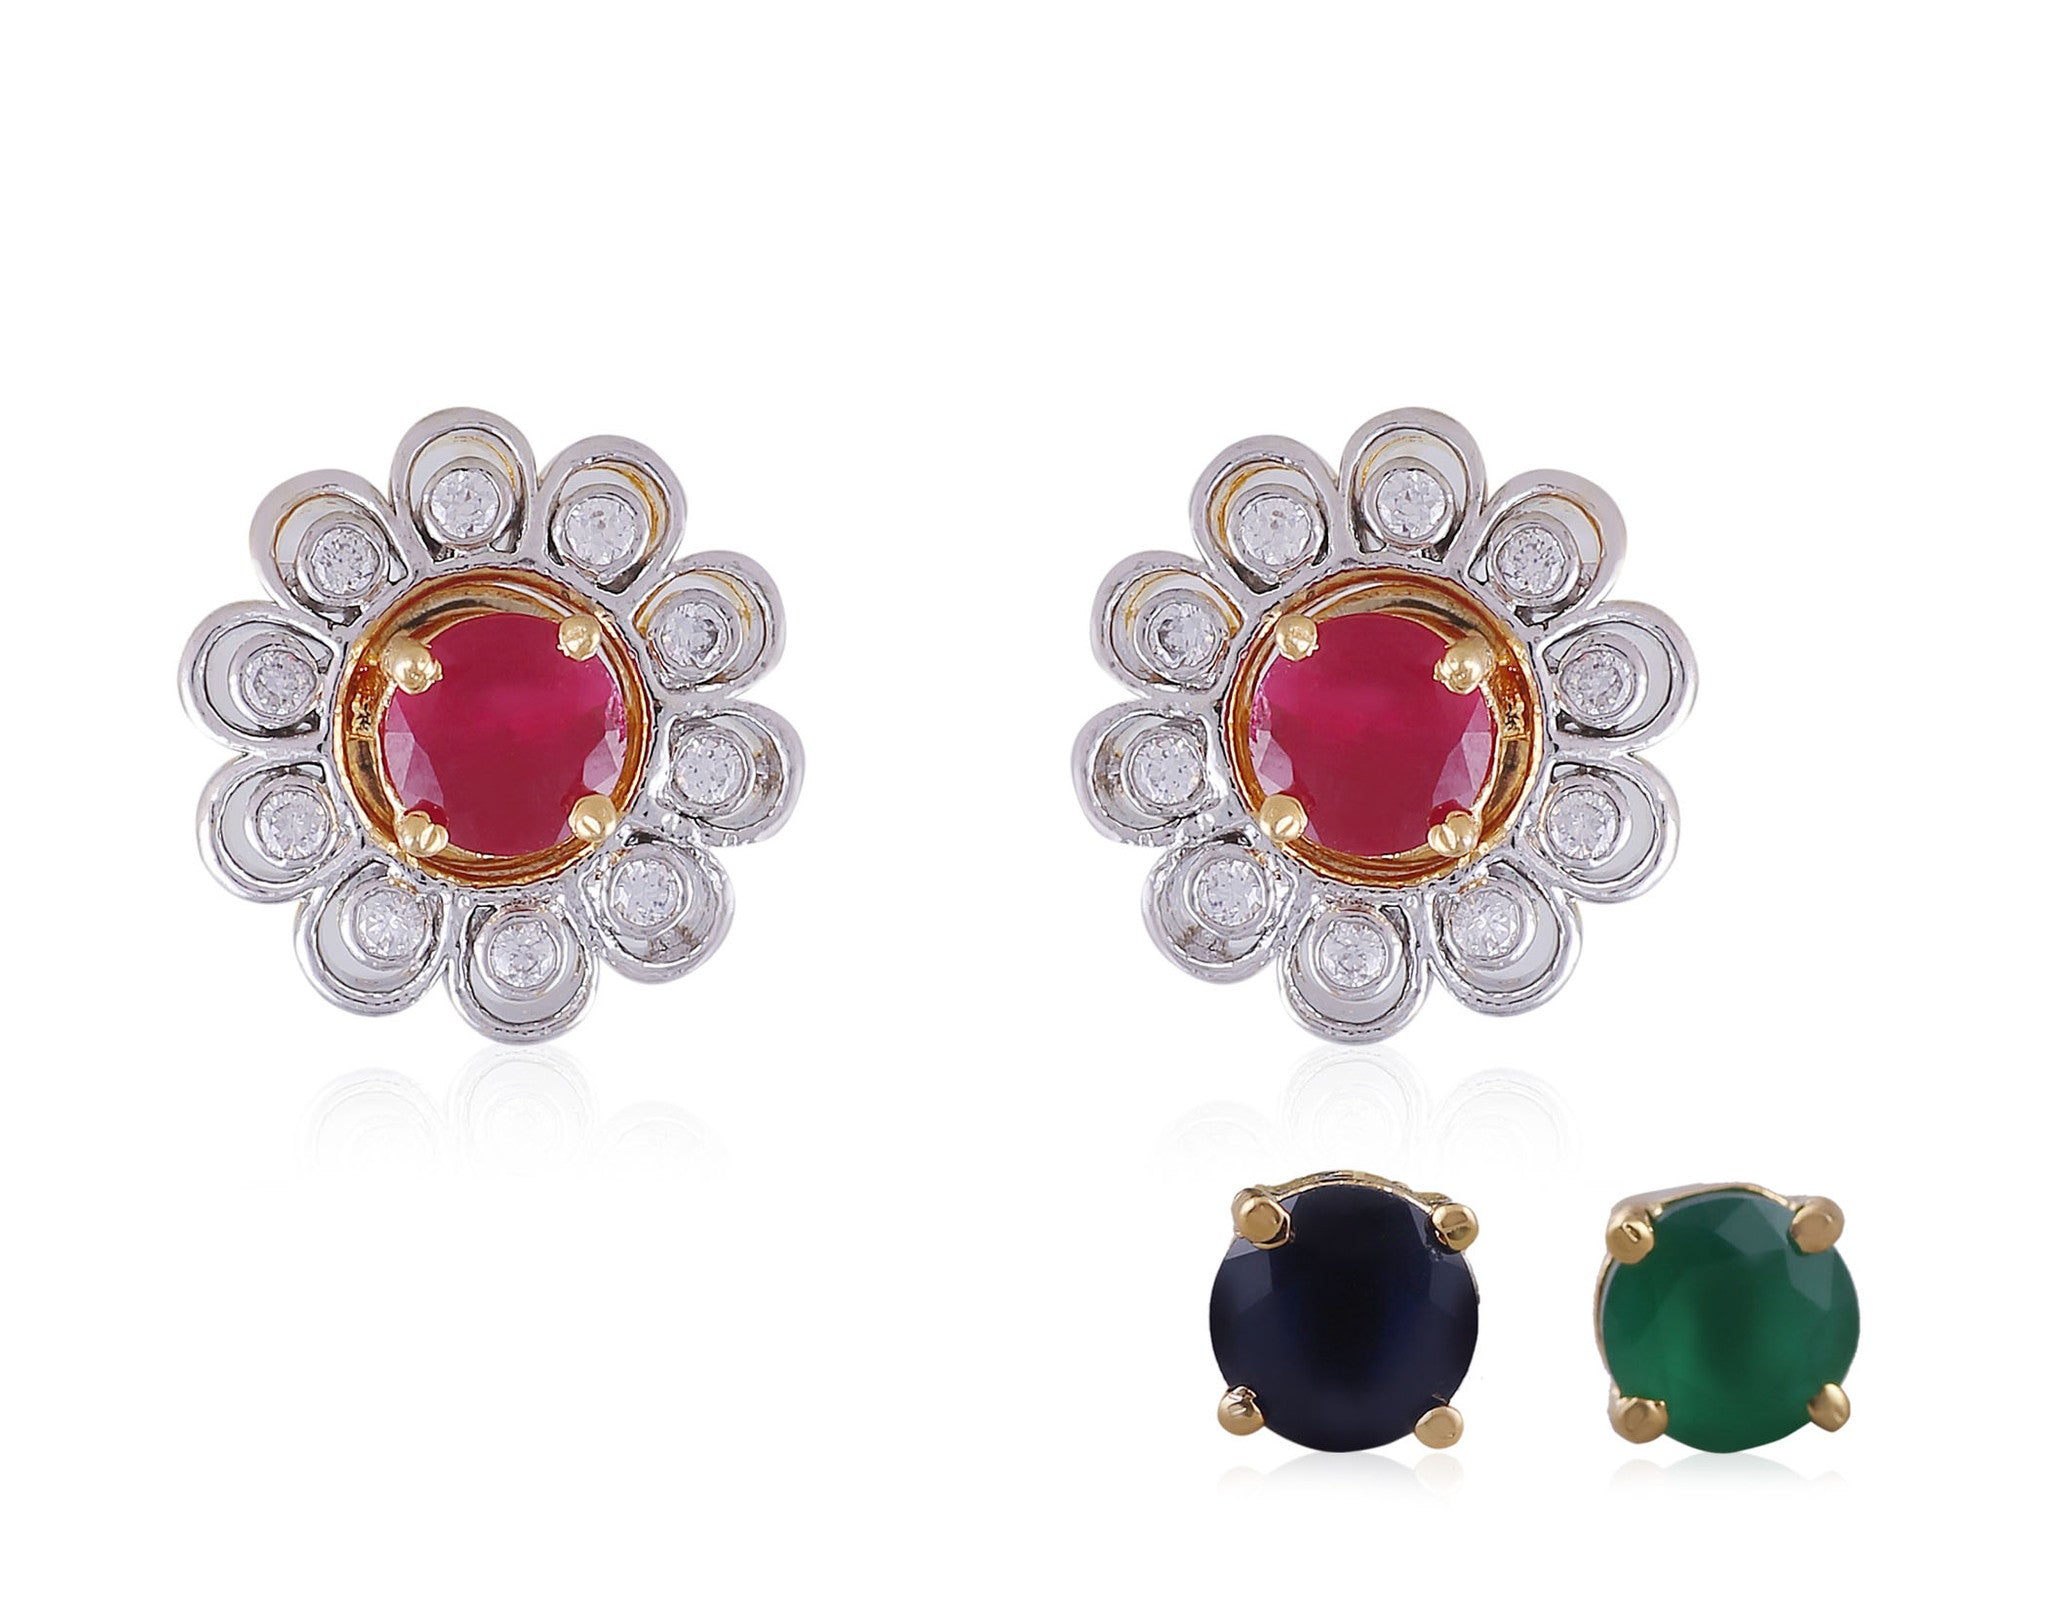 Changeable stones American Diamond Earrings DI595